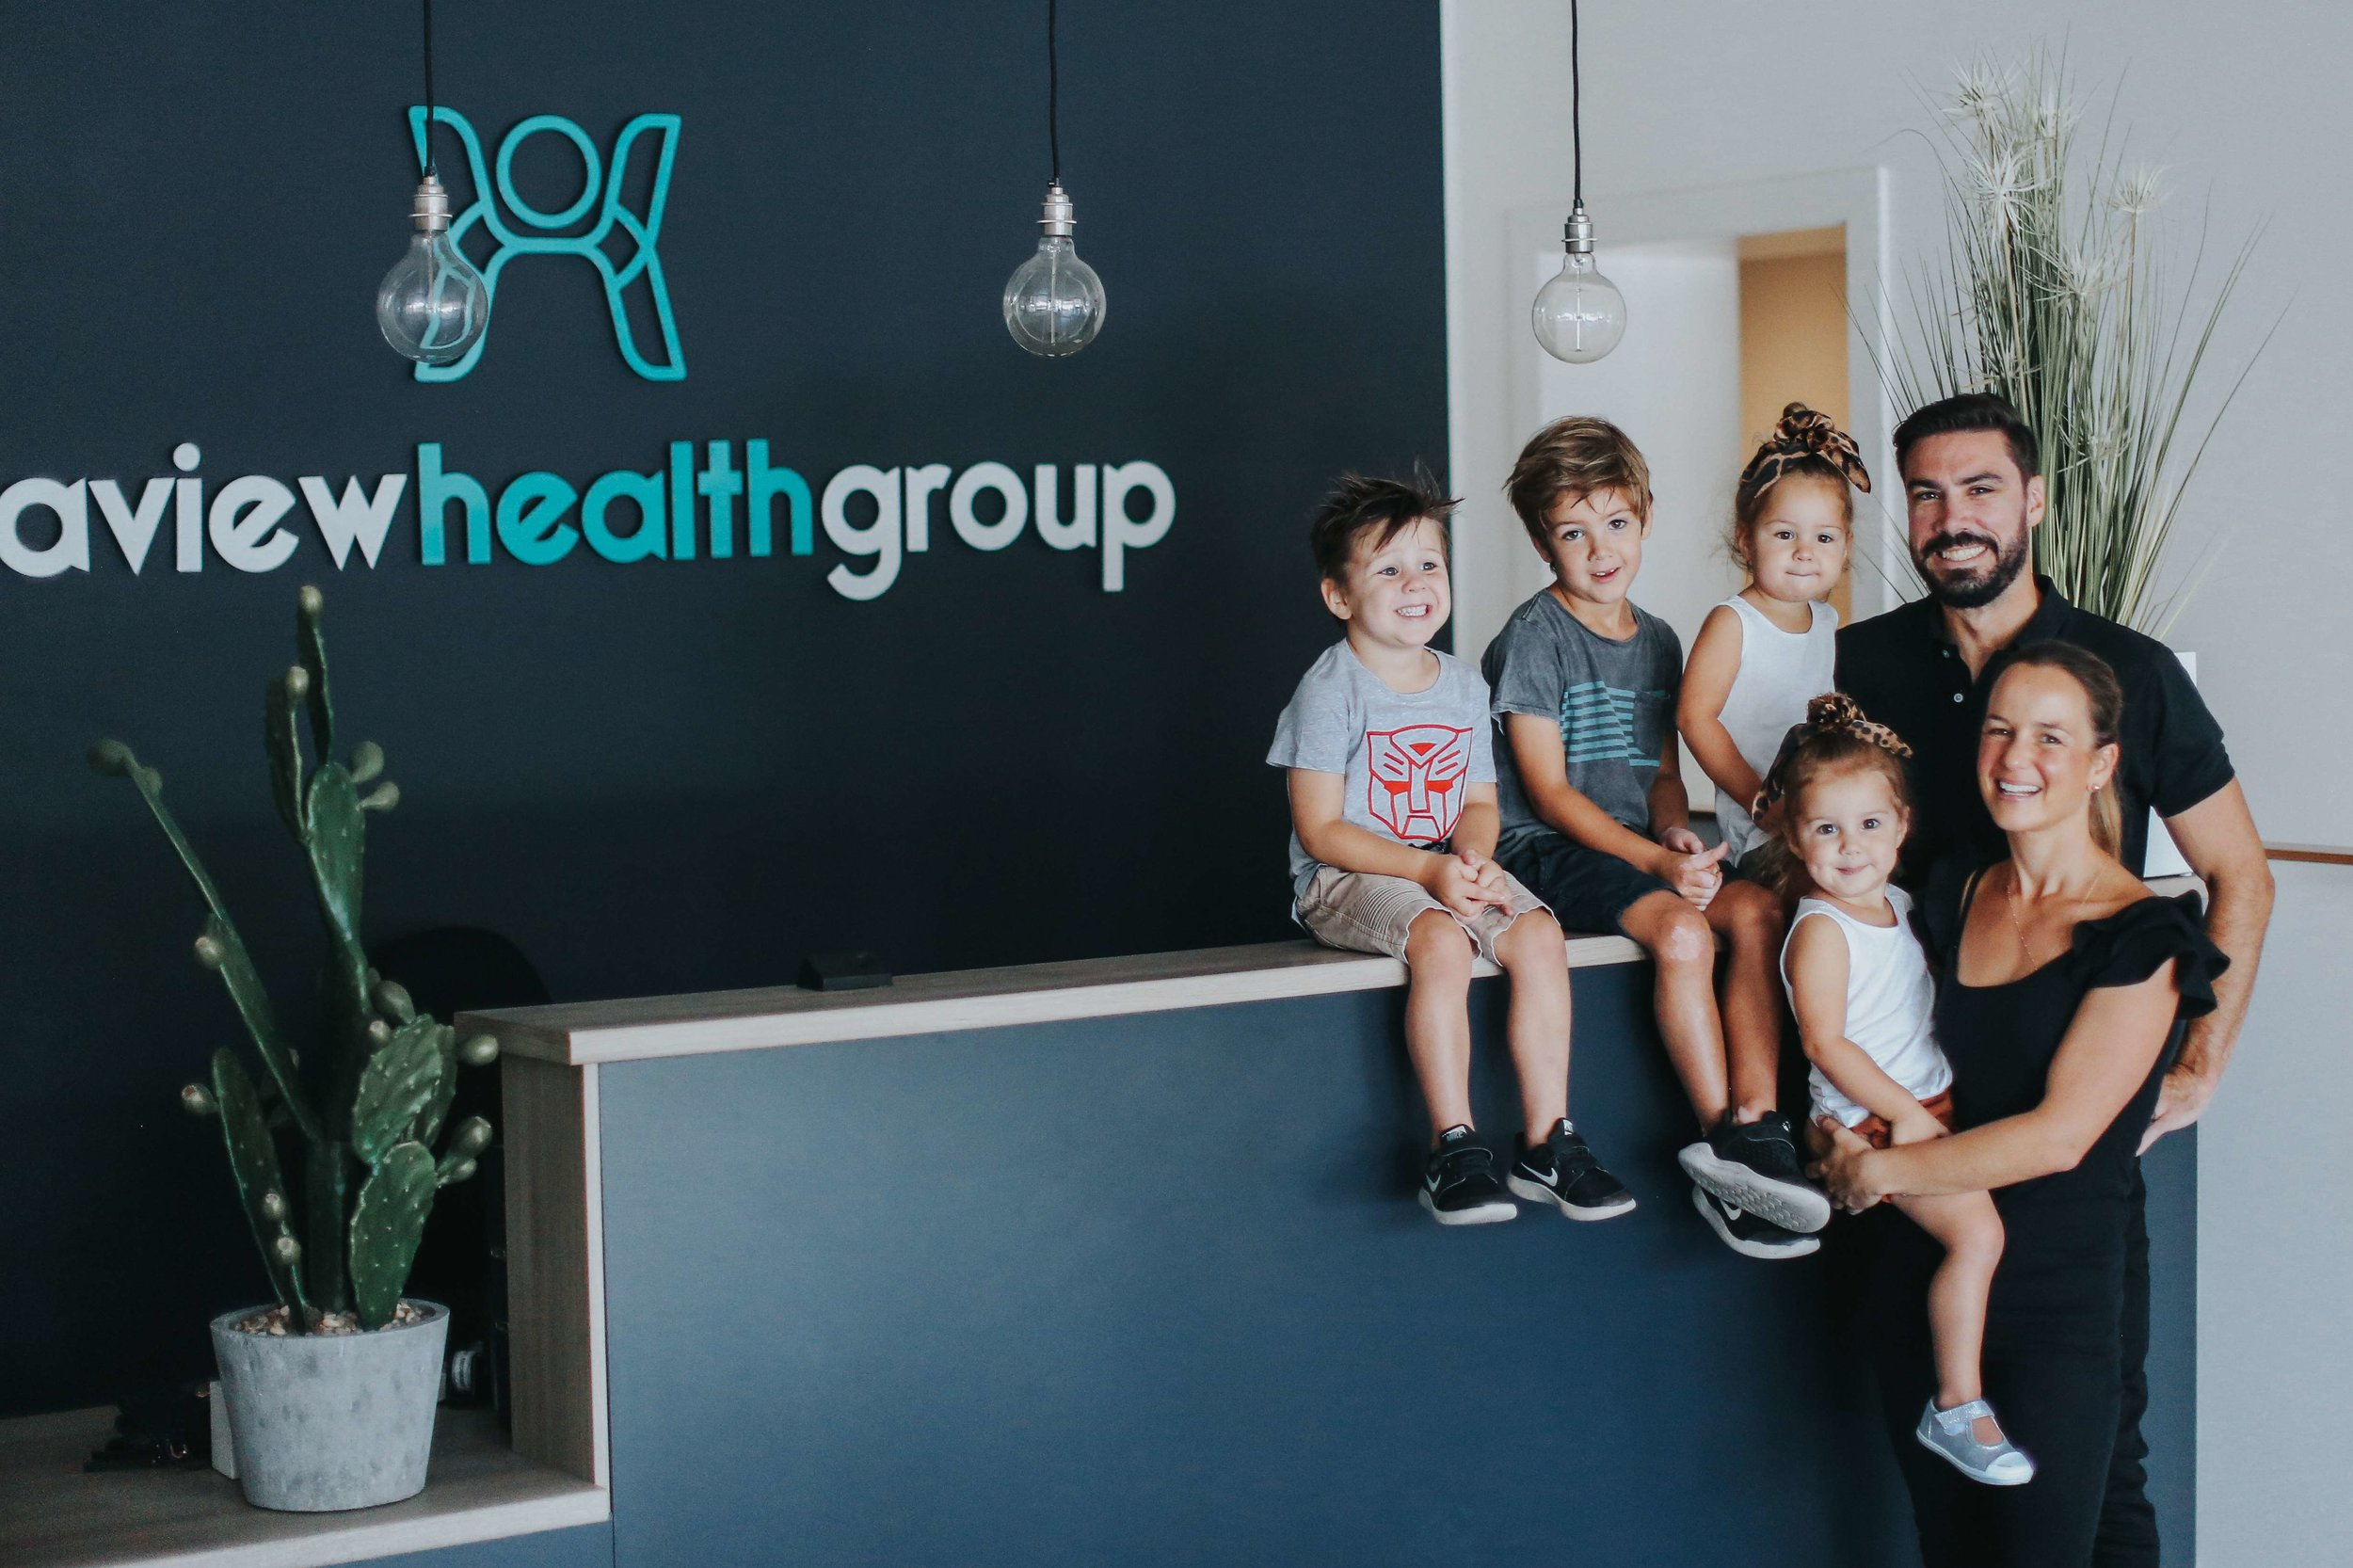 Family health practice with a Bayside community feel